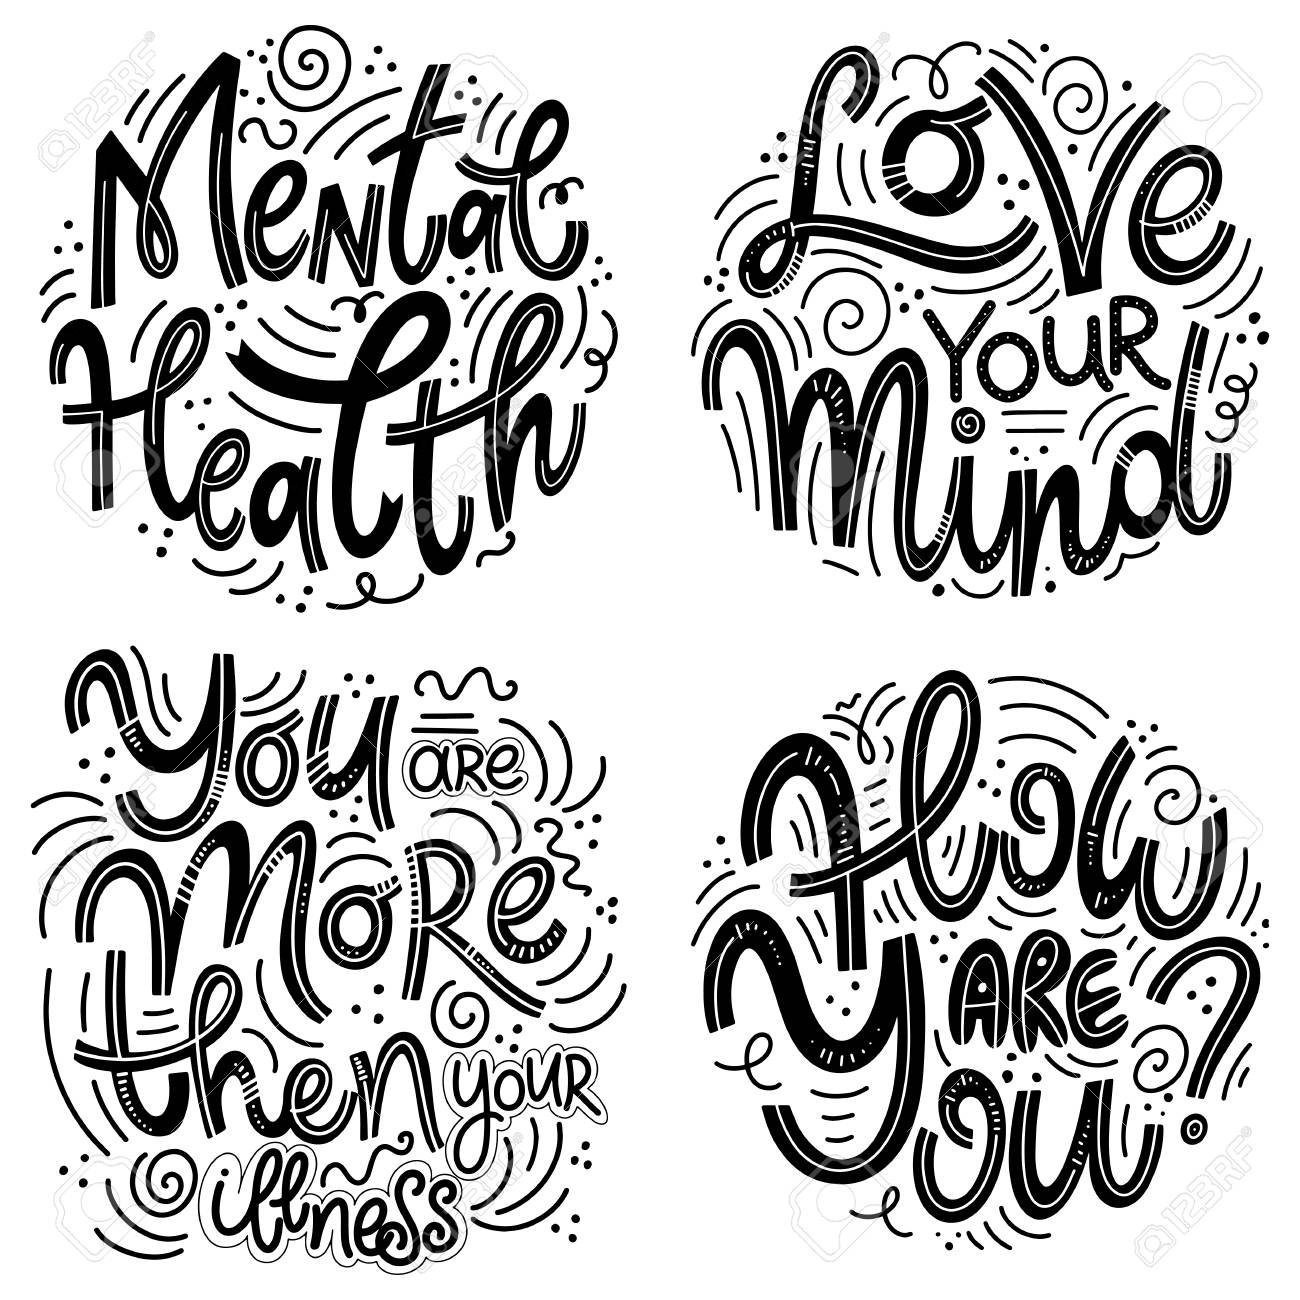 Motivational and Inspirational quotes sets for Mental Health